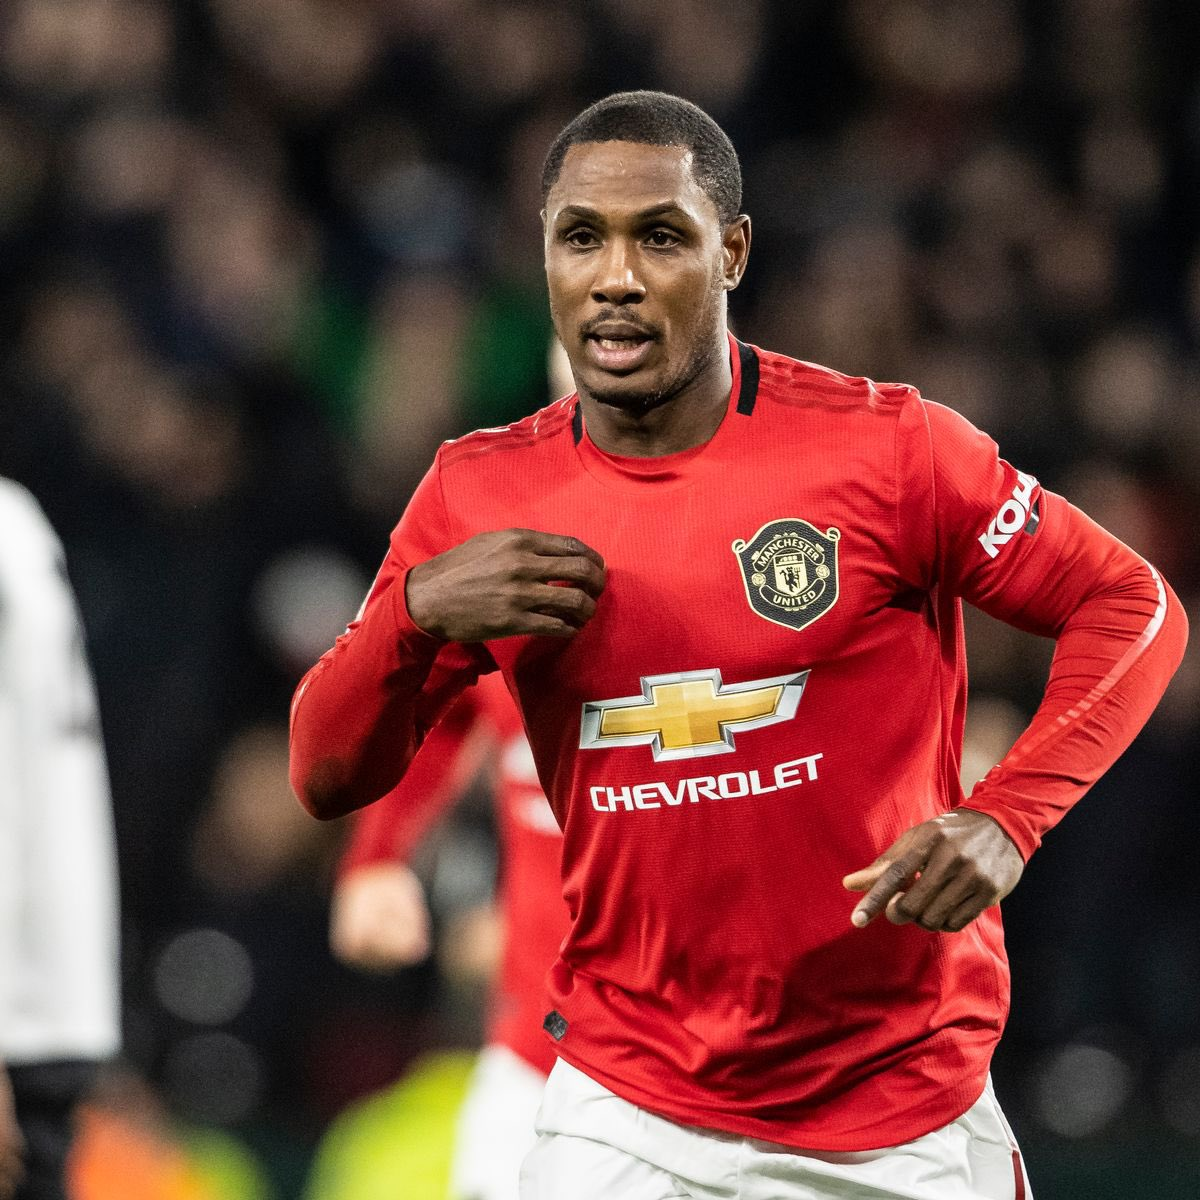 FA Cup: Solskjaer Confirms Ighalo Will Face Former Club Watford